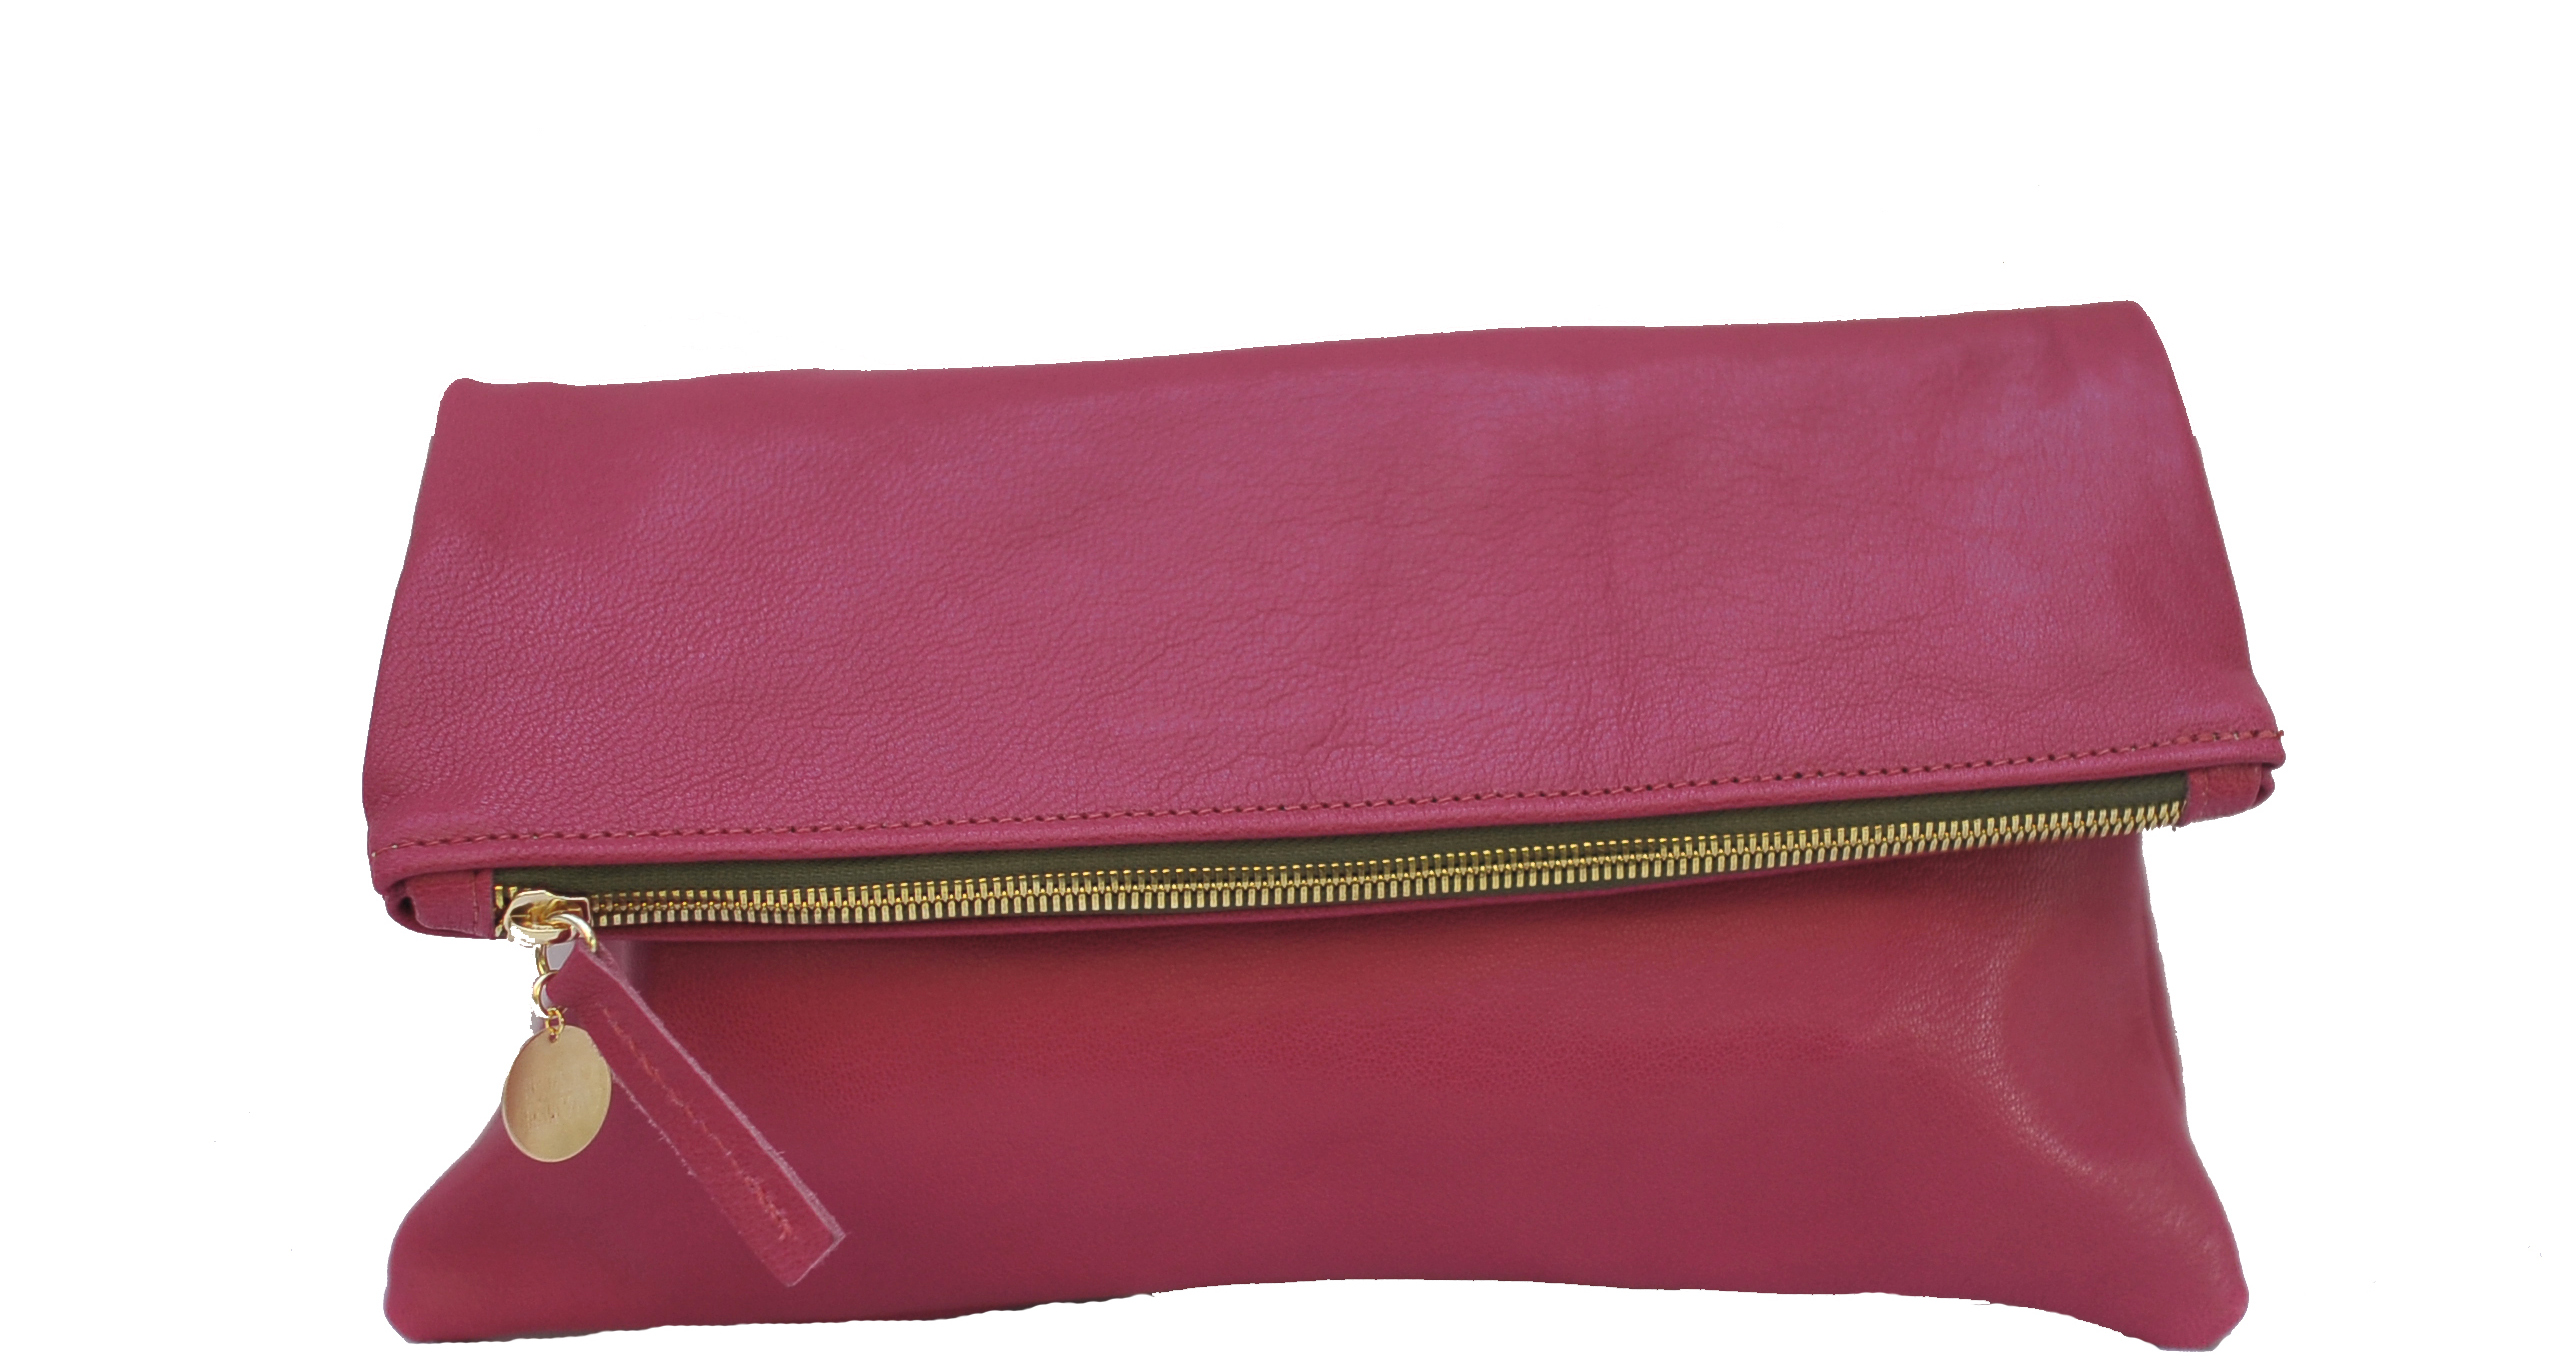 This clutch is also available in pink for moms who love bright colors